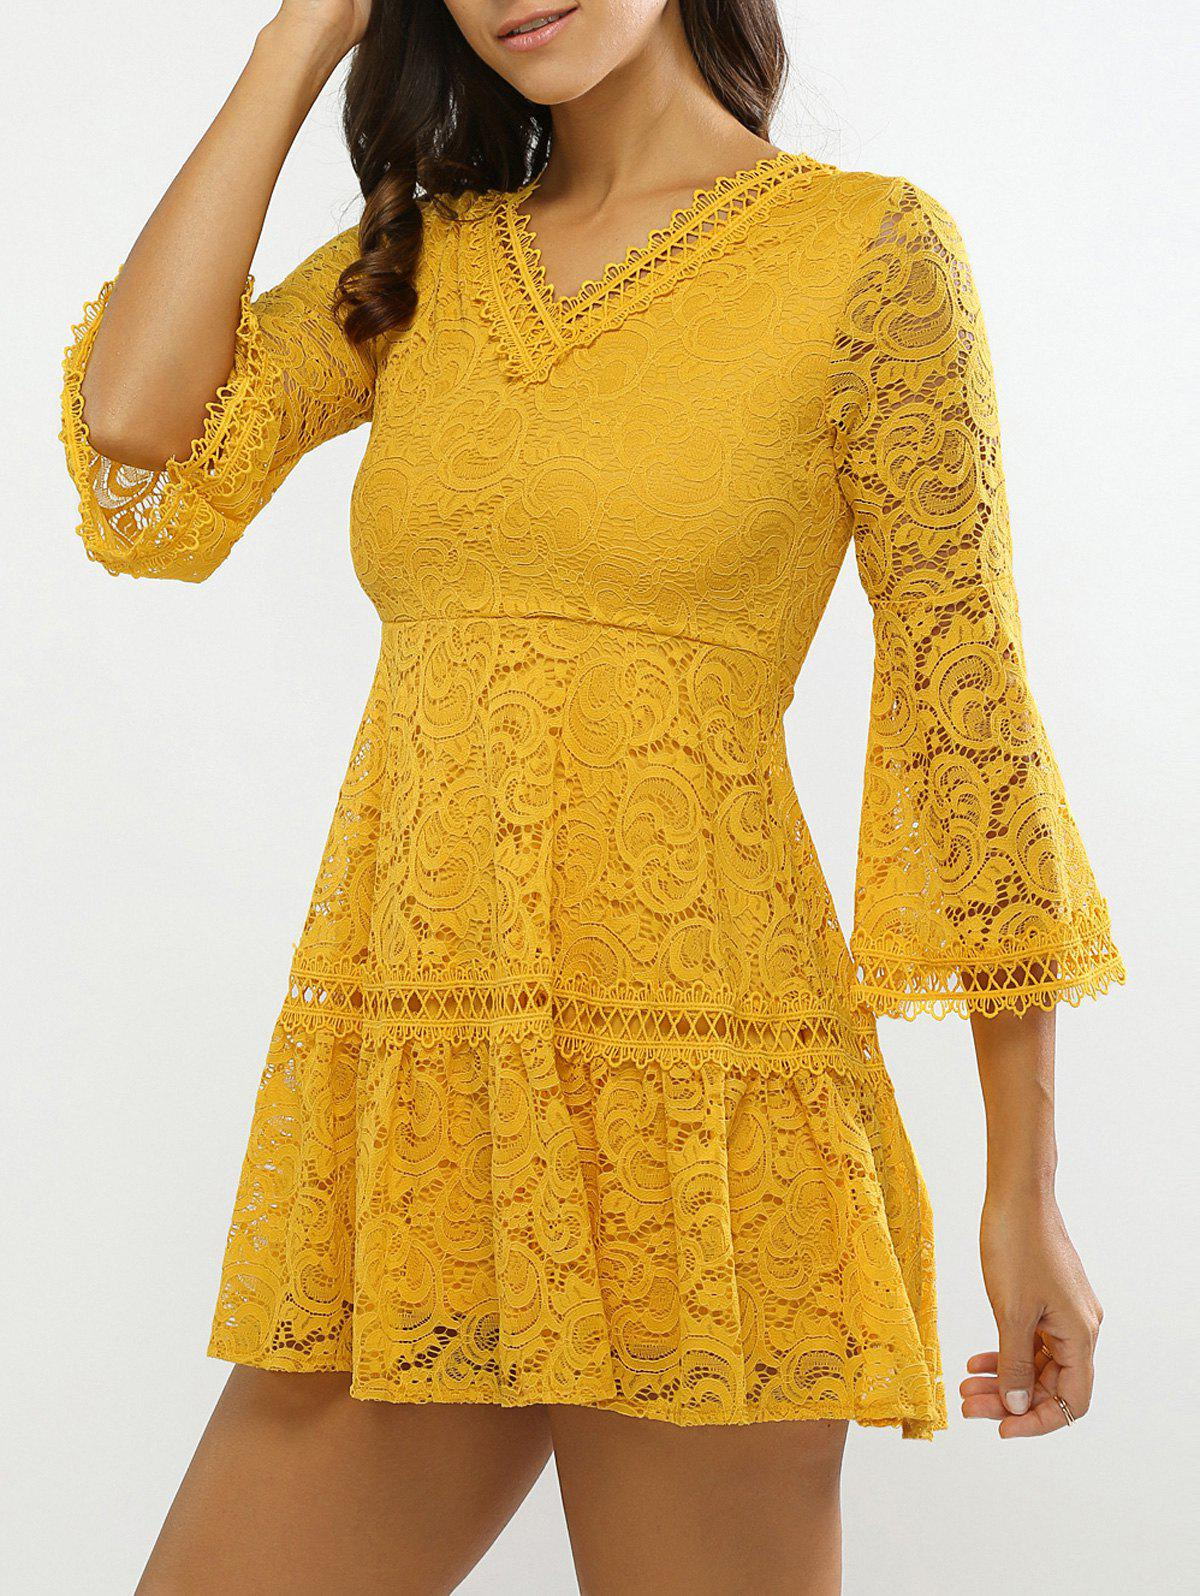 Bell Sleeves Guipure Openwork Lace Dress - YELLOW ONE SIZE